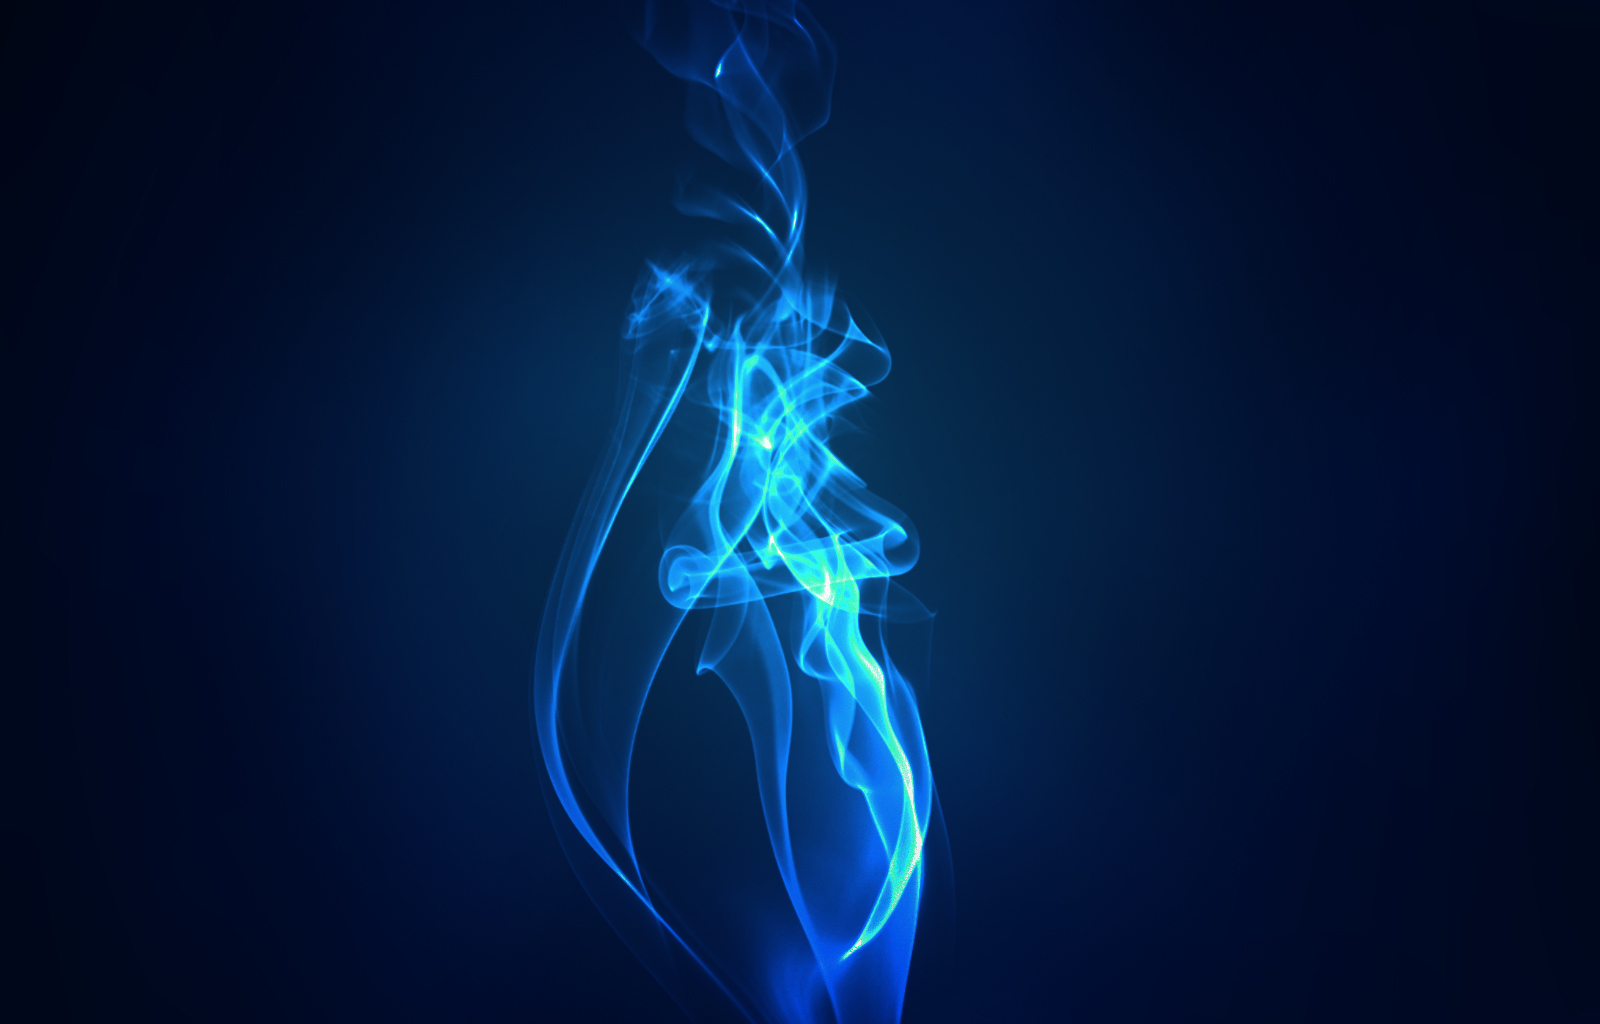 Blue Flames Wallpaper   Viewing Gallery 1600x1024